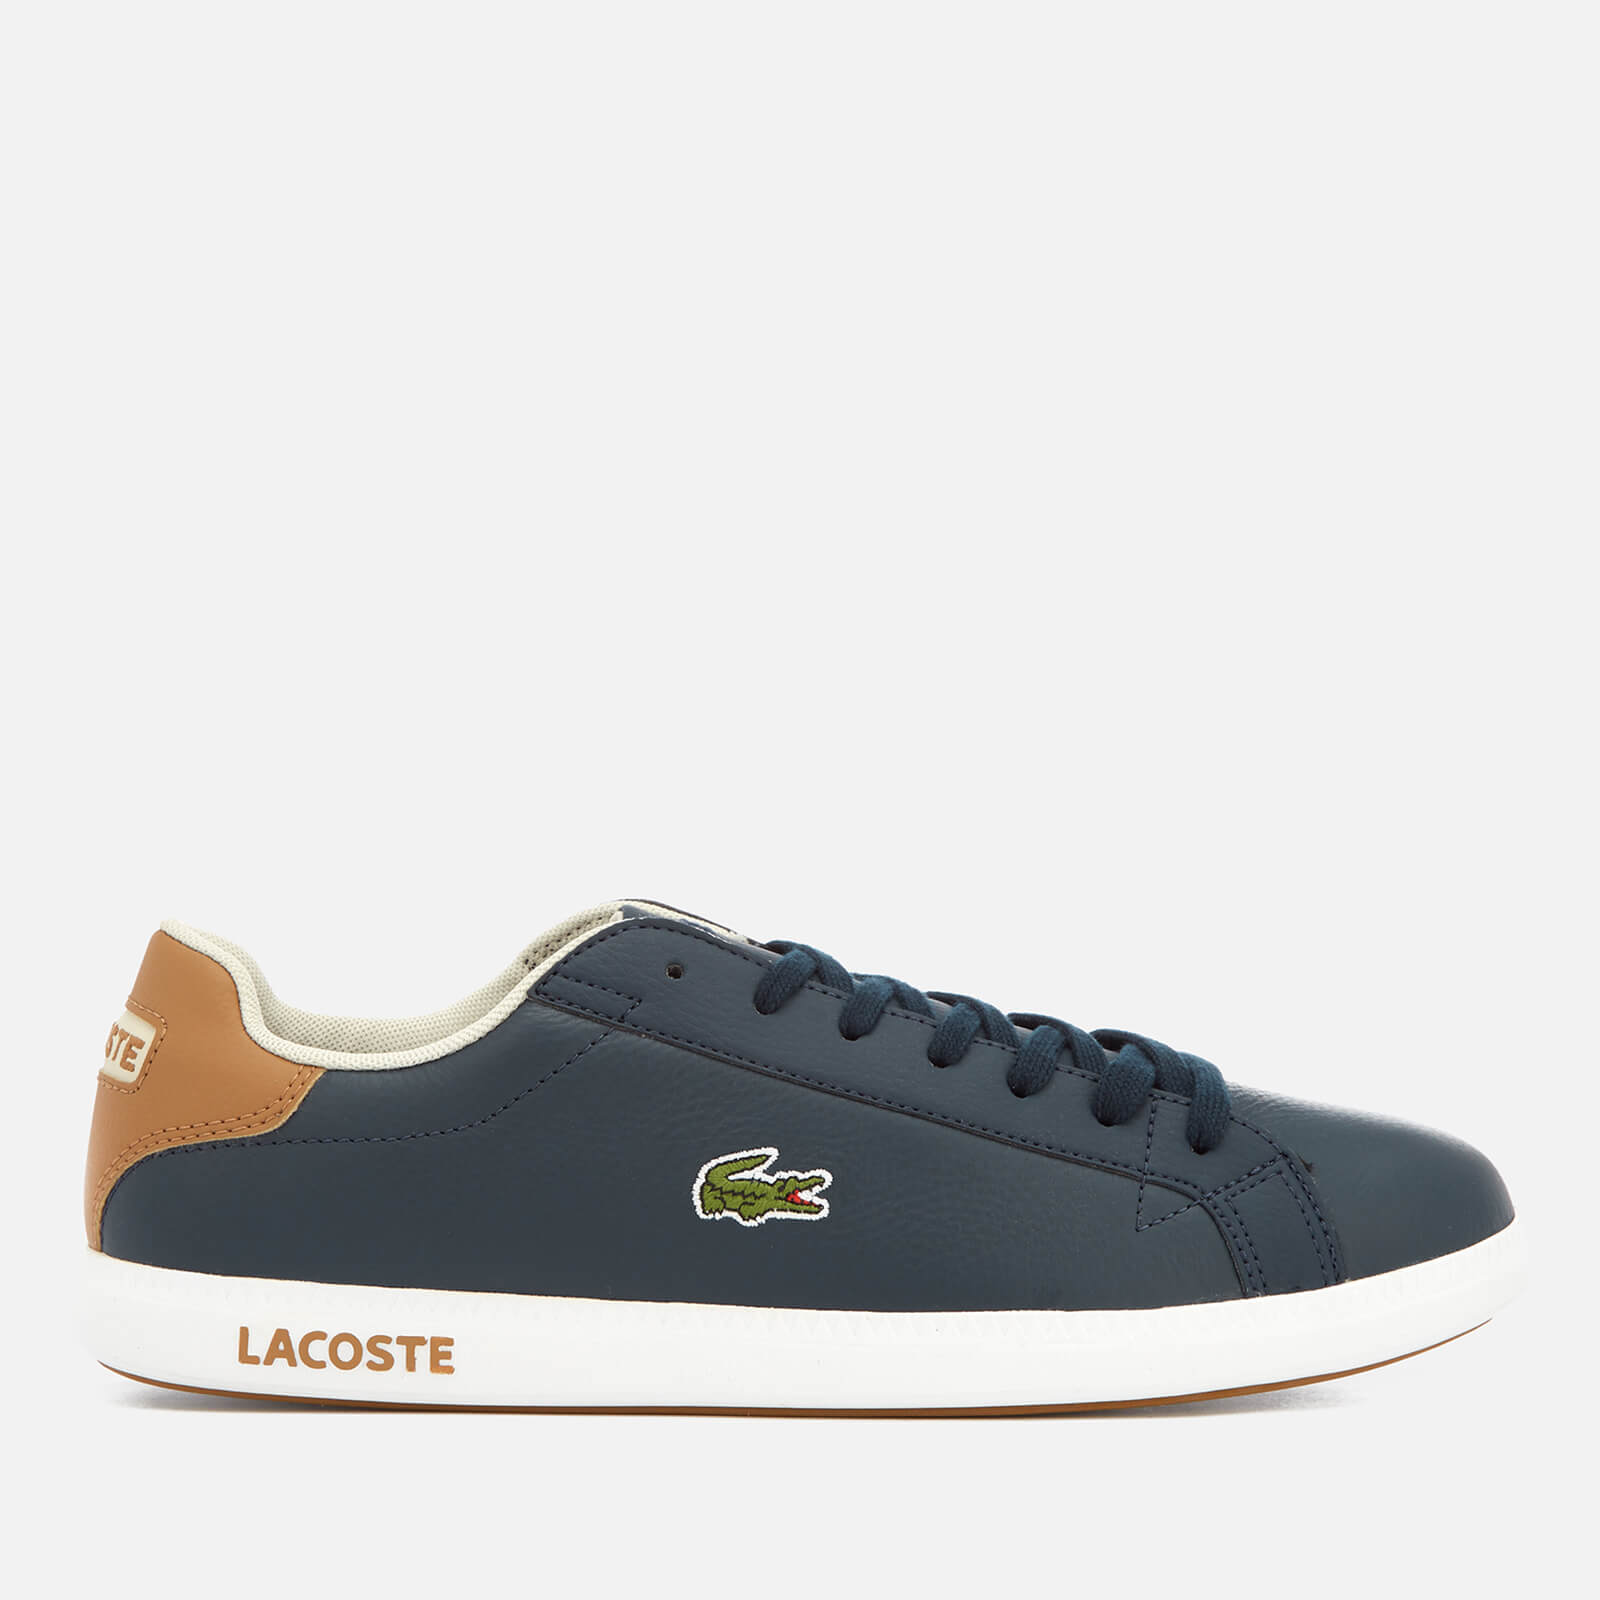 ccf0c59c8ad3ed Lacoste Men s Graduate Lcr3 118 1 Leather Trainers - Navy Light Brown -  Free UK Delivery over £50